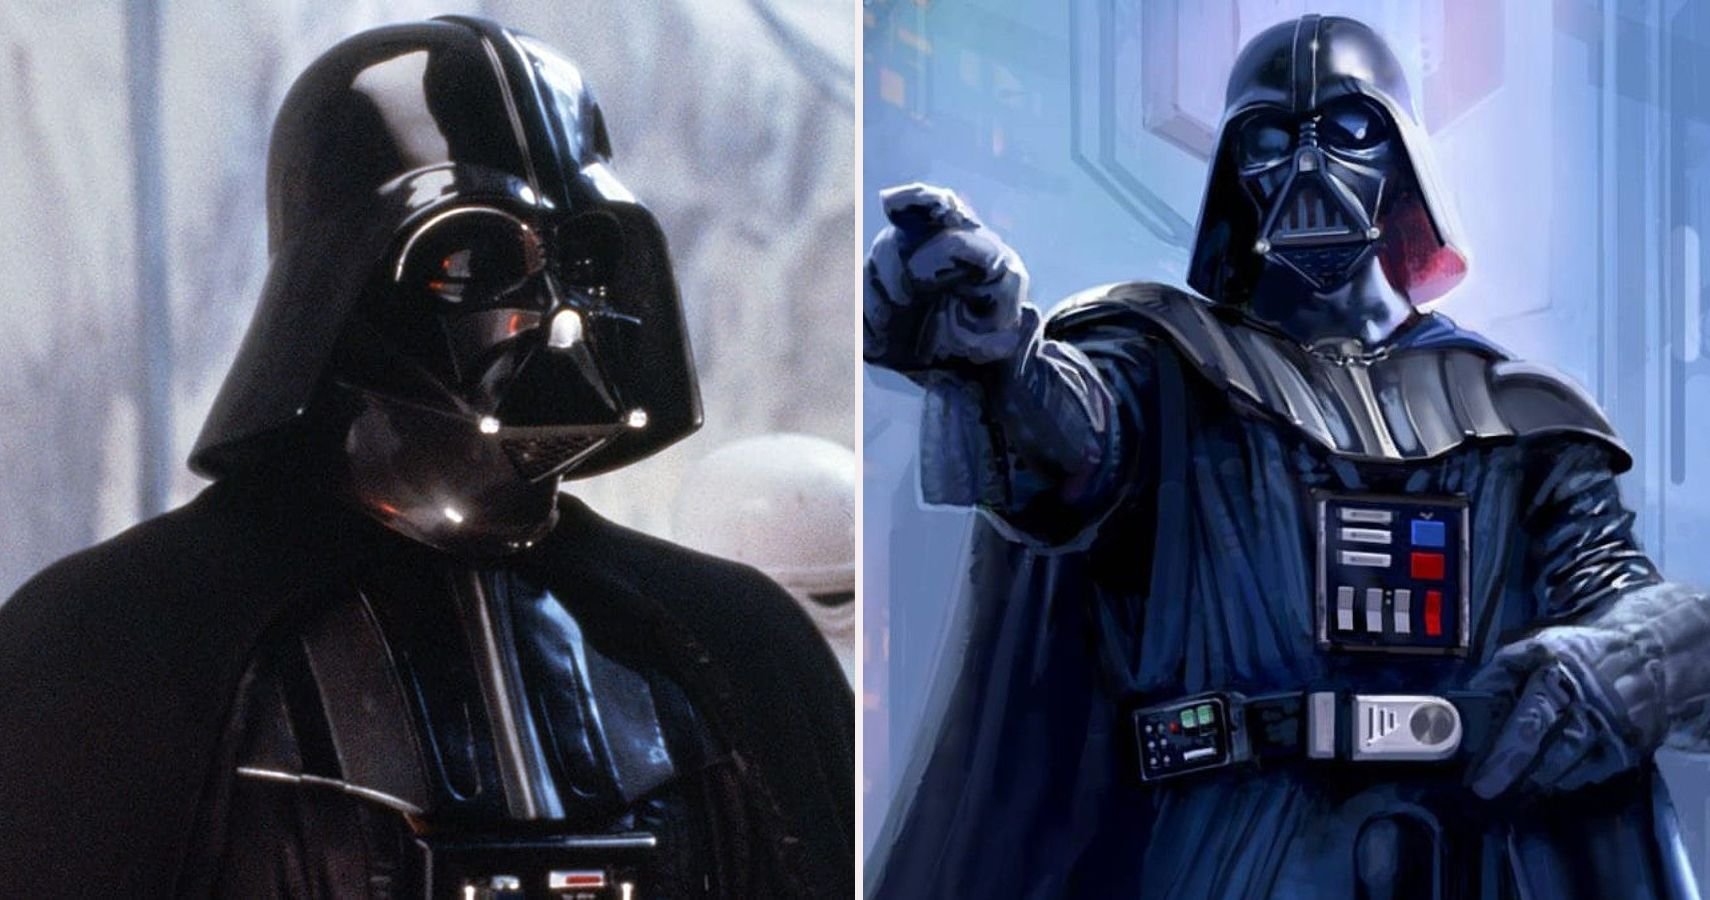 star wars: 10 things you didn't know about darth vader's suit